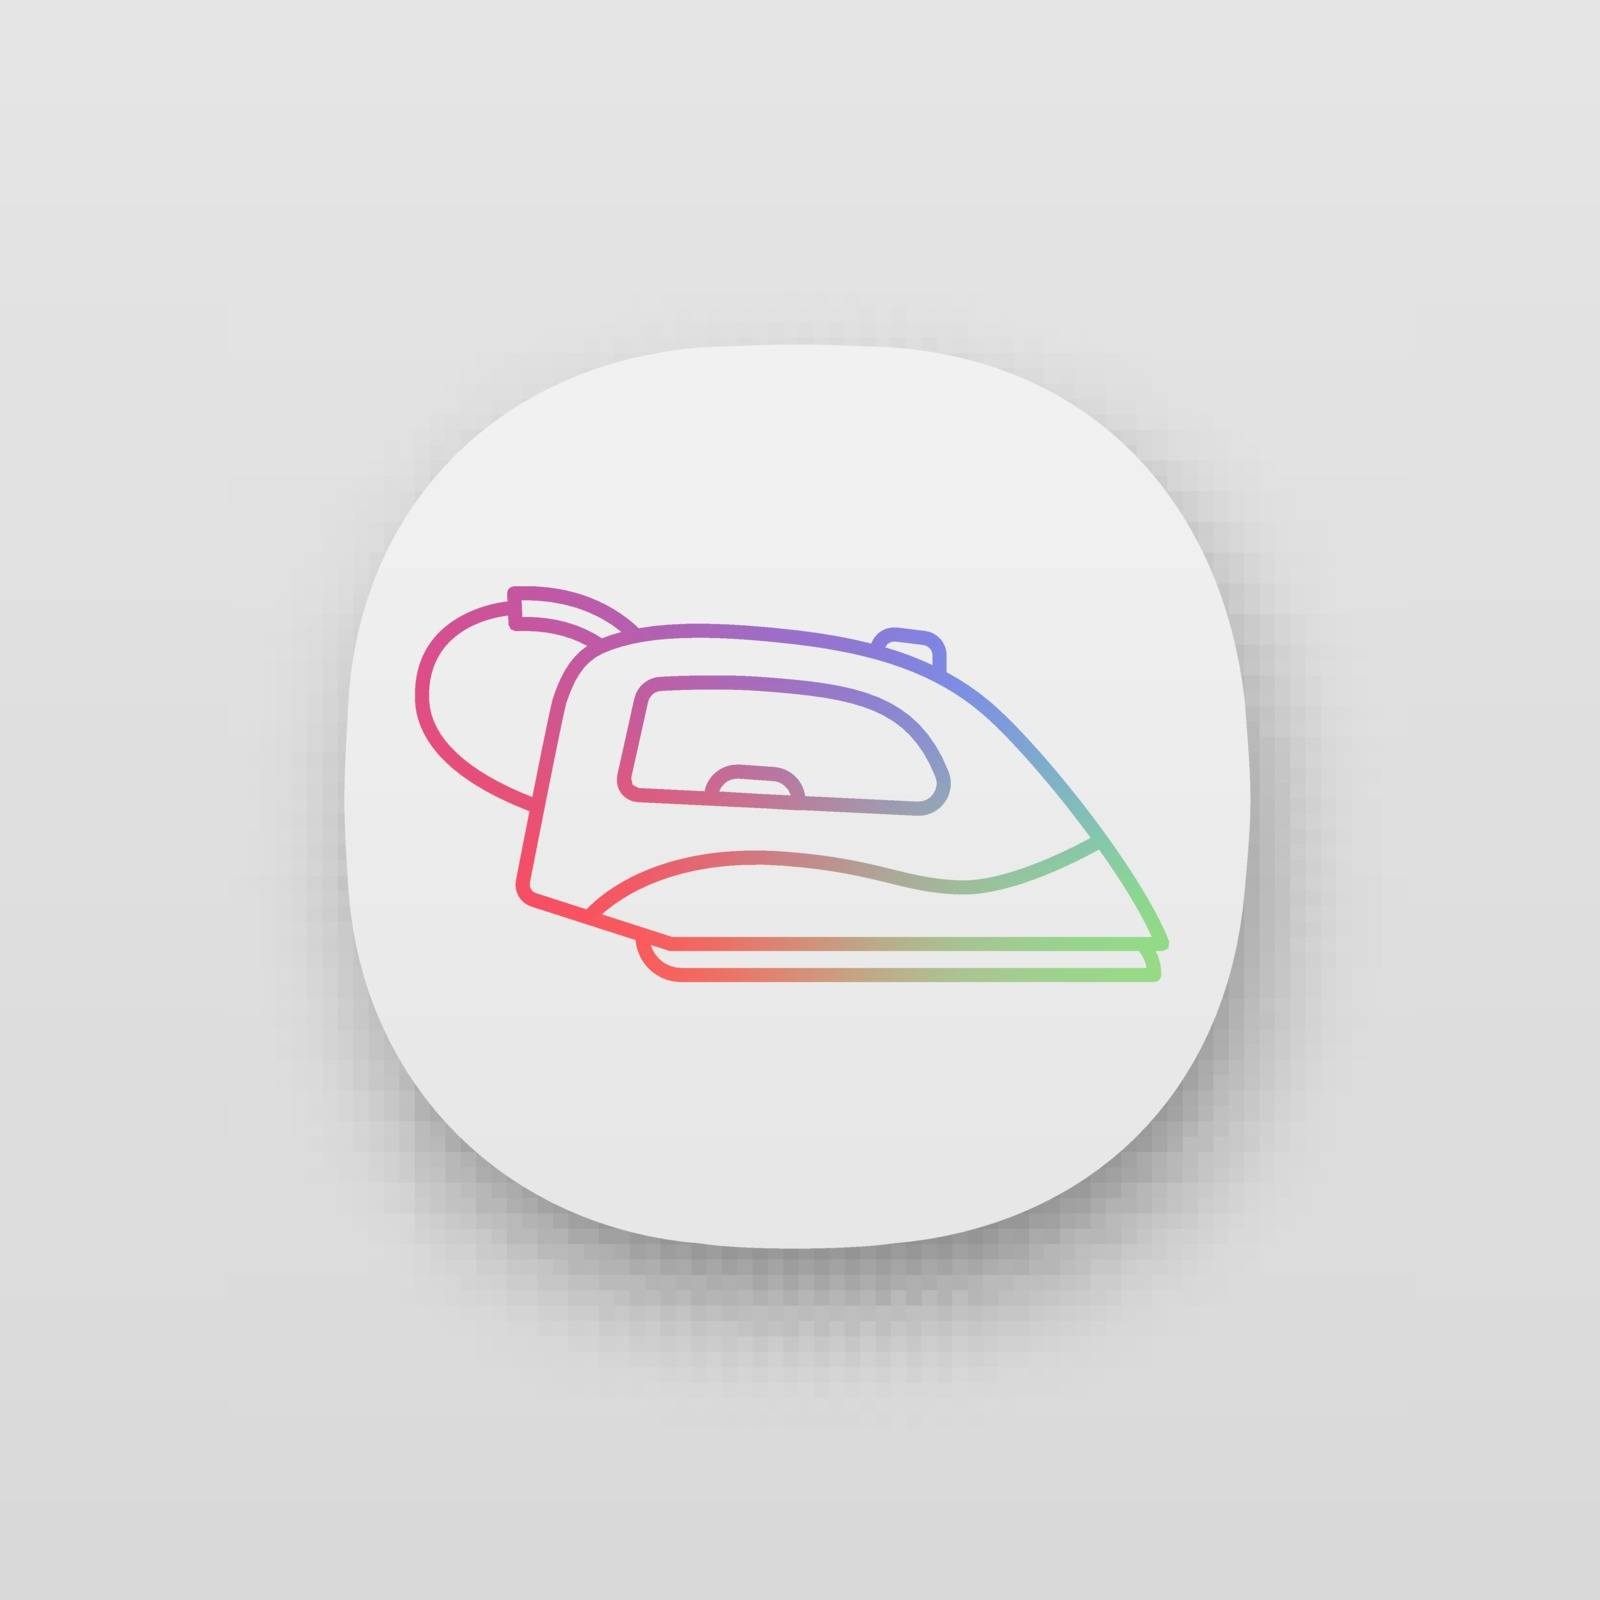 Steam iron app icon. UI UX user interface. Household appliance. Web or mobile application. Vector isolated illustration